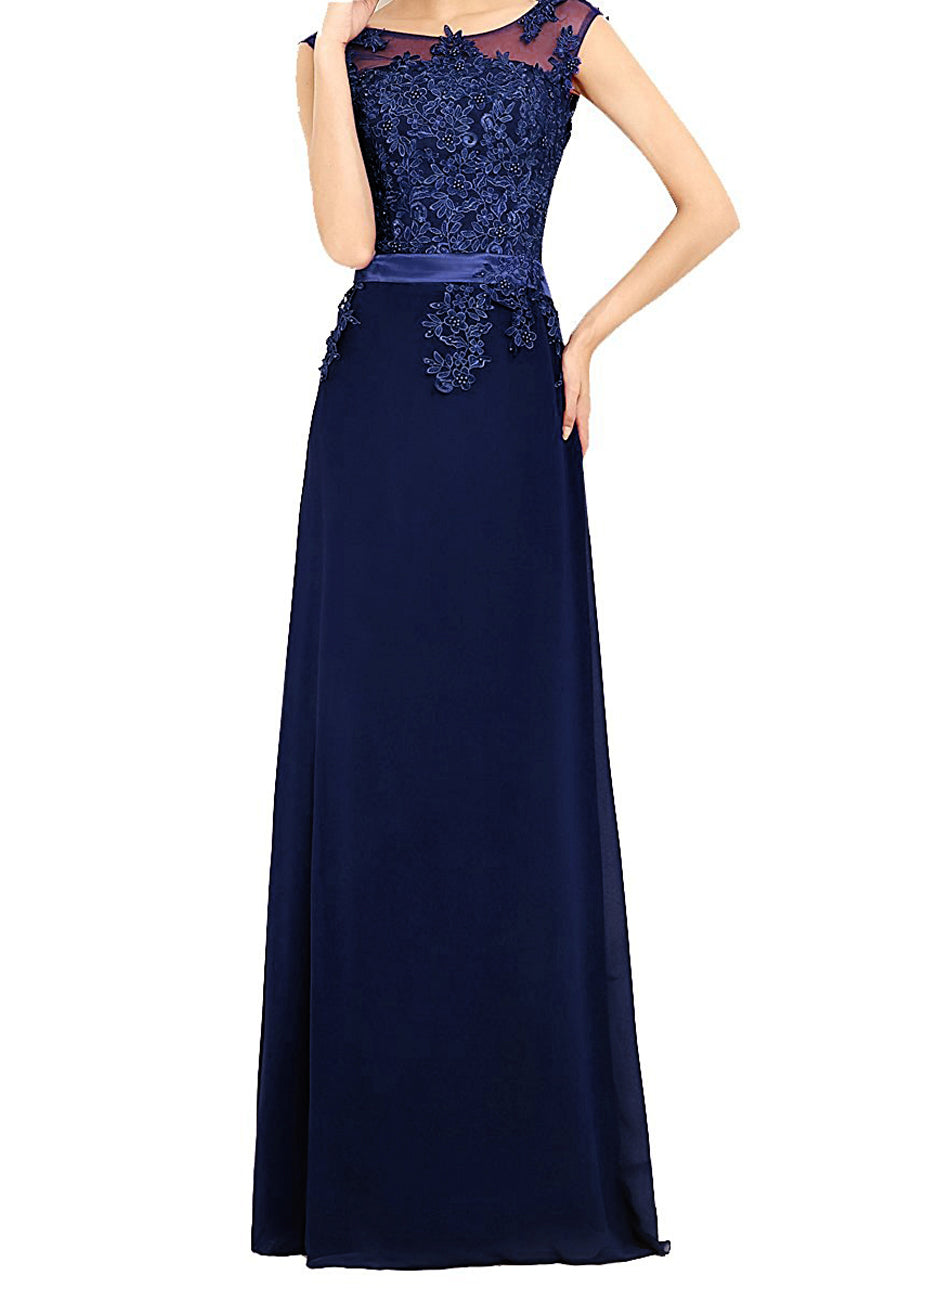 Autumn dark navy blue  lace chiffon long bridesmaid wedding bridal prom evening ballgown dress loulous bridal boutique ltd uk